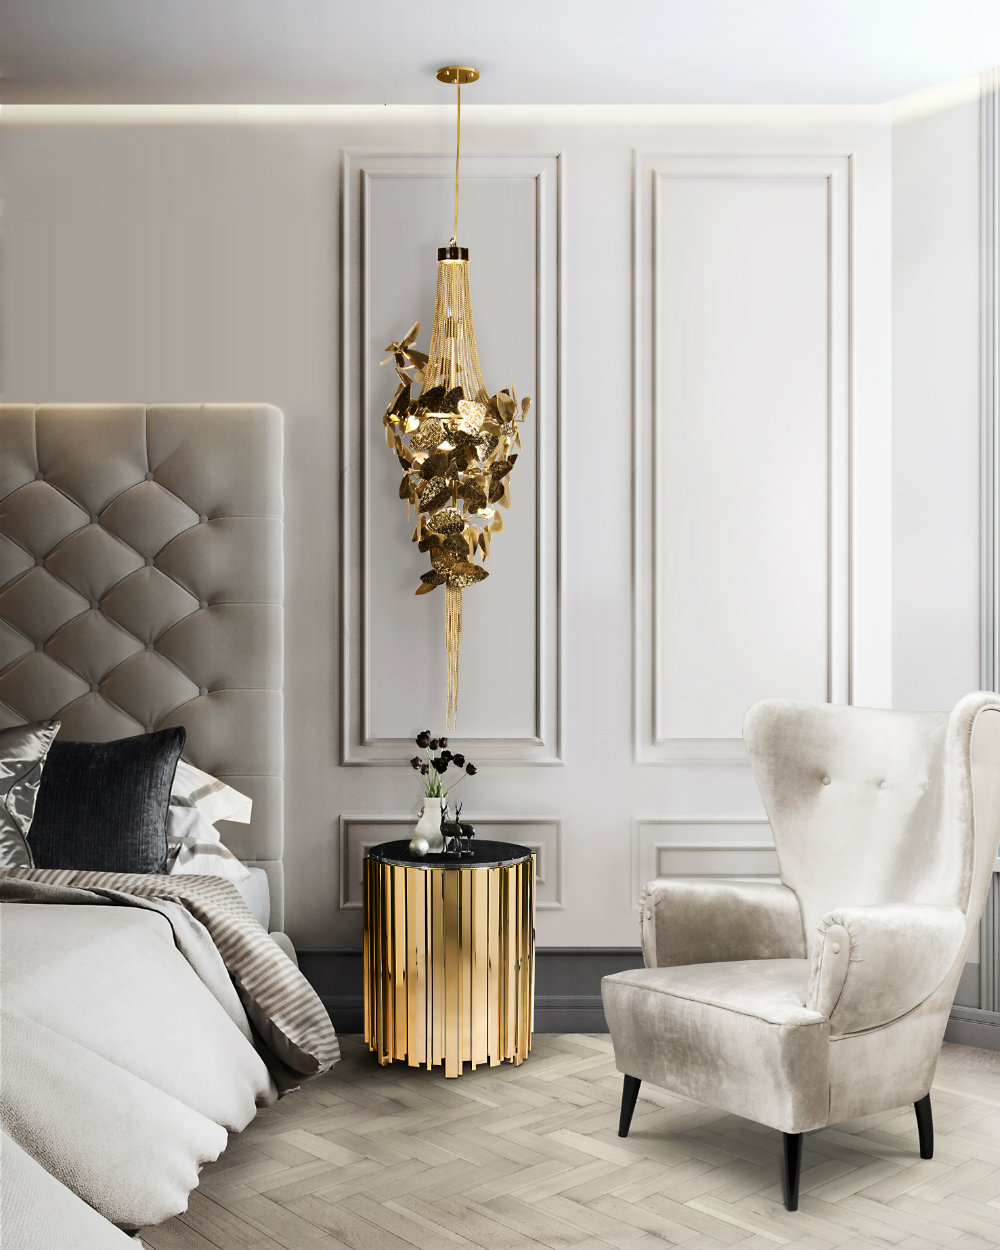 Discover the Bedroom Colors Top Interior Designers Love 02 Bedroom Colors Discover the Bedroom Colors Top Interior Designers Love Discover the Bedroom Colors Top Interior Designers Love 02